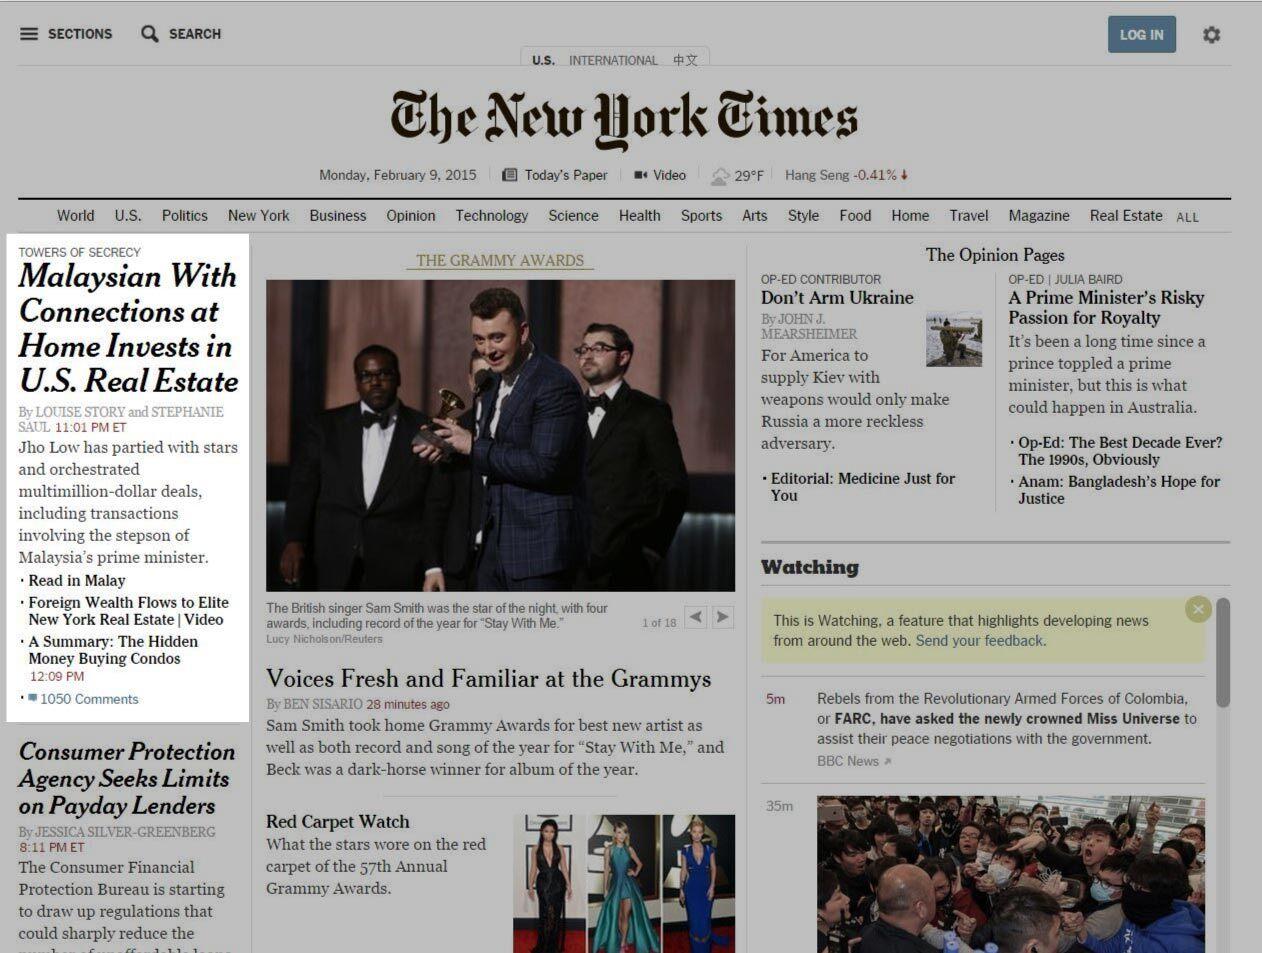 investigations/New-York-Times-Article-Low.jpg